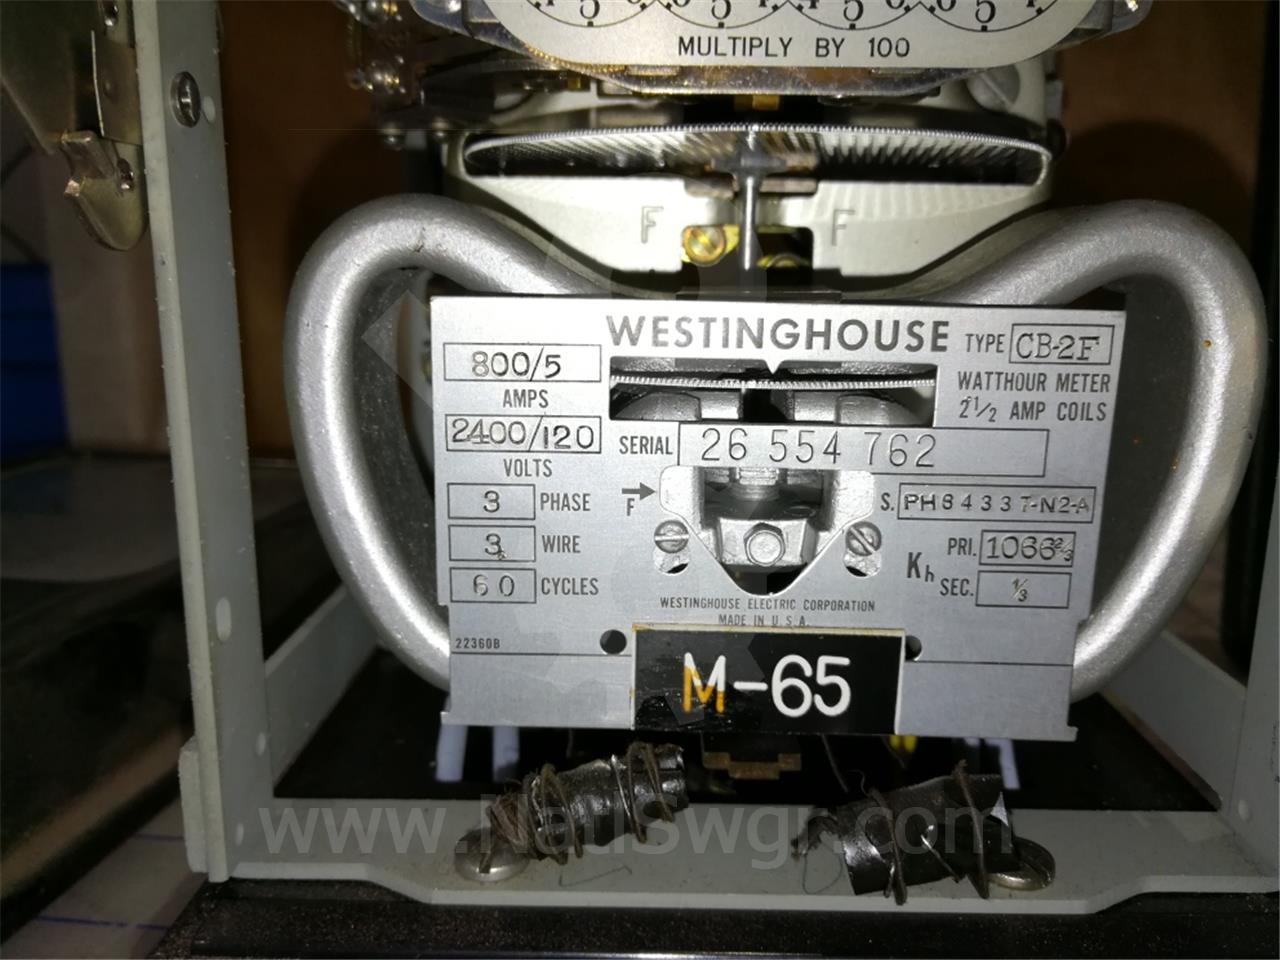 PH64337N2A Westinghouse CB-2F WATTHOUR METER RELAY 3 PHASE, 3 WIRE, 120VAC, 5A, PRI 1066 2/3, SEC 1/3